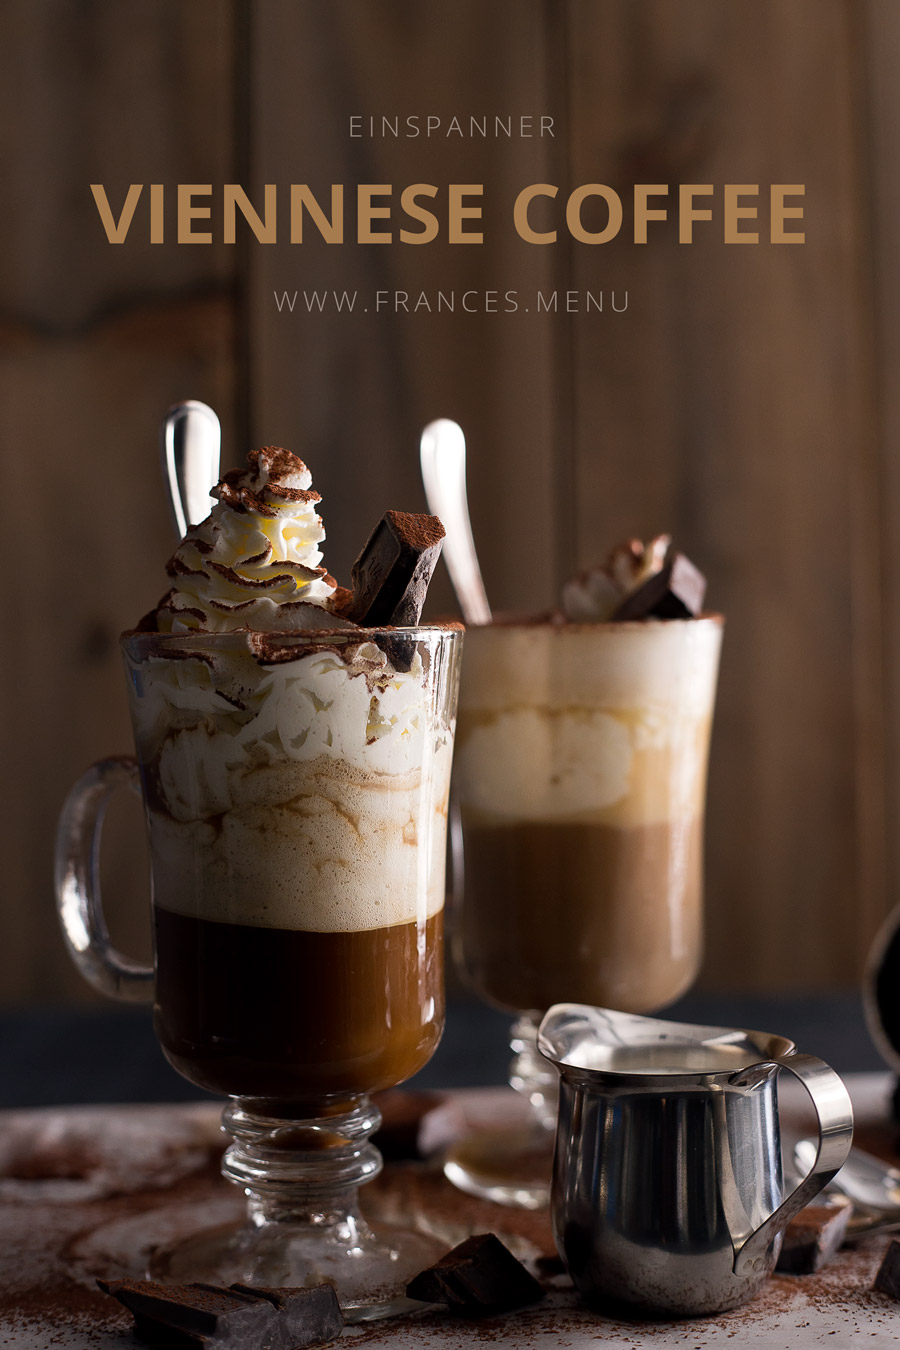 viennese_coffee_einspanner_7_feature